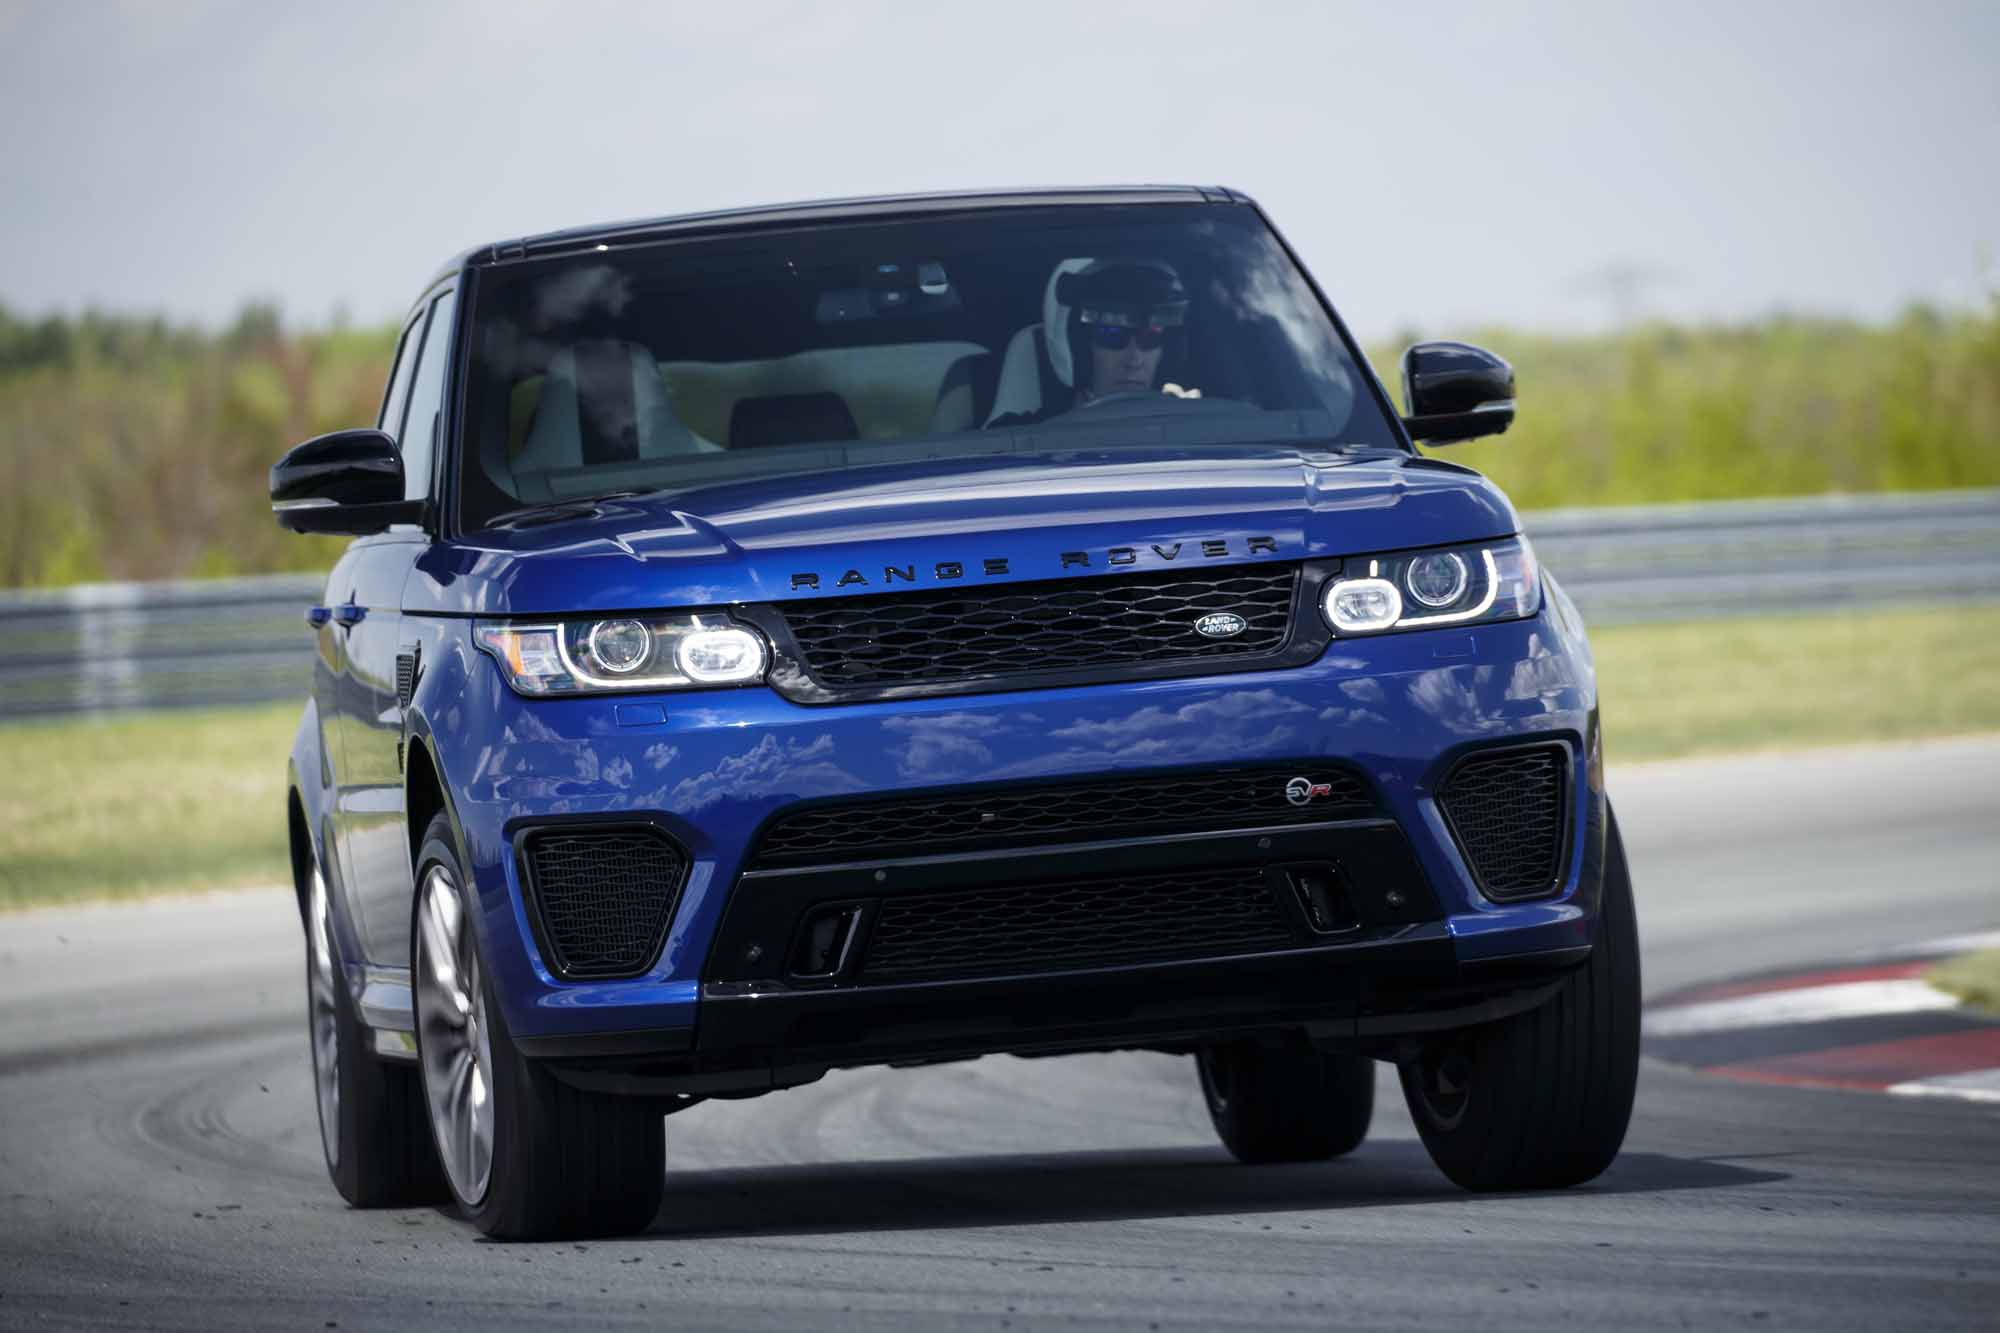 2016 range rover sport svr 189. Black Bedroom Furniture Sets. Home Design Ideas